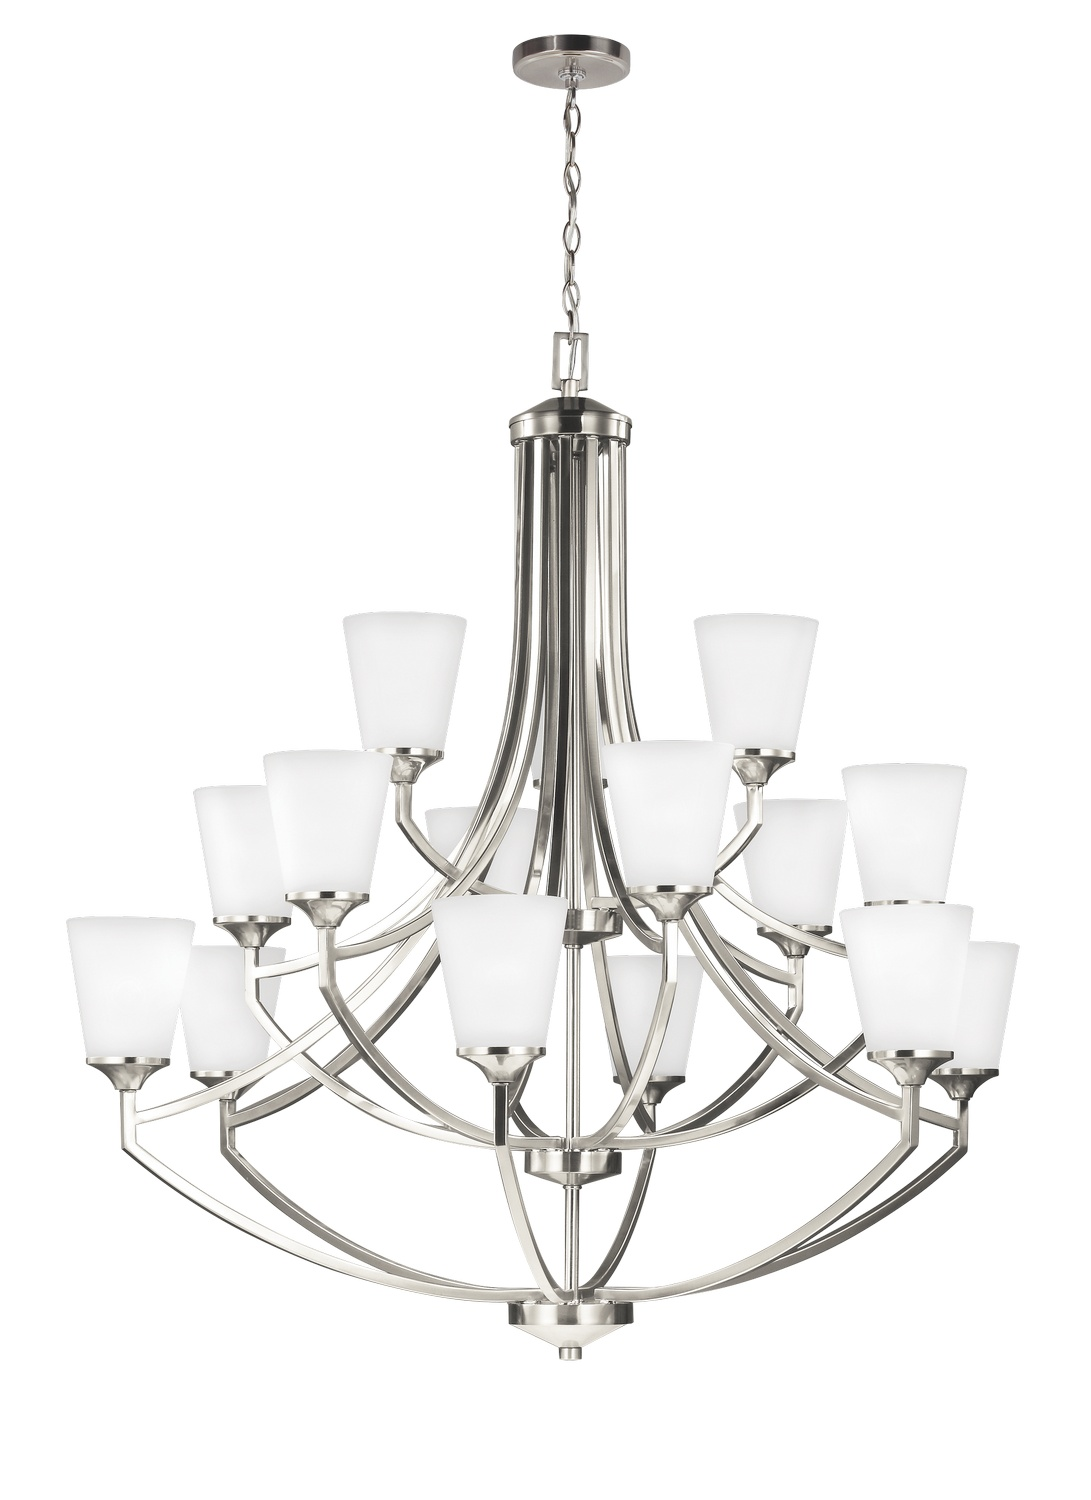 15 Light Chandelier from the Hanford collection by Seagull 3124515 962